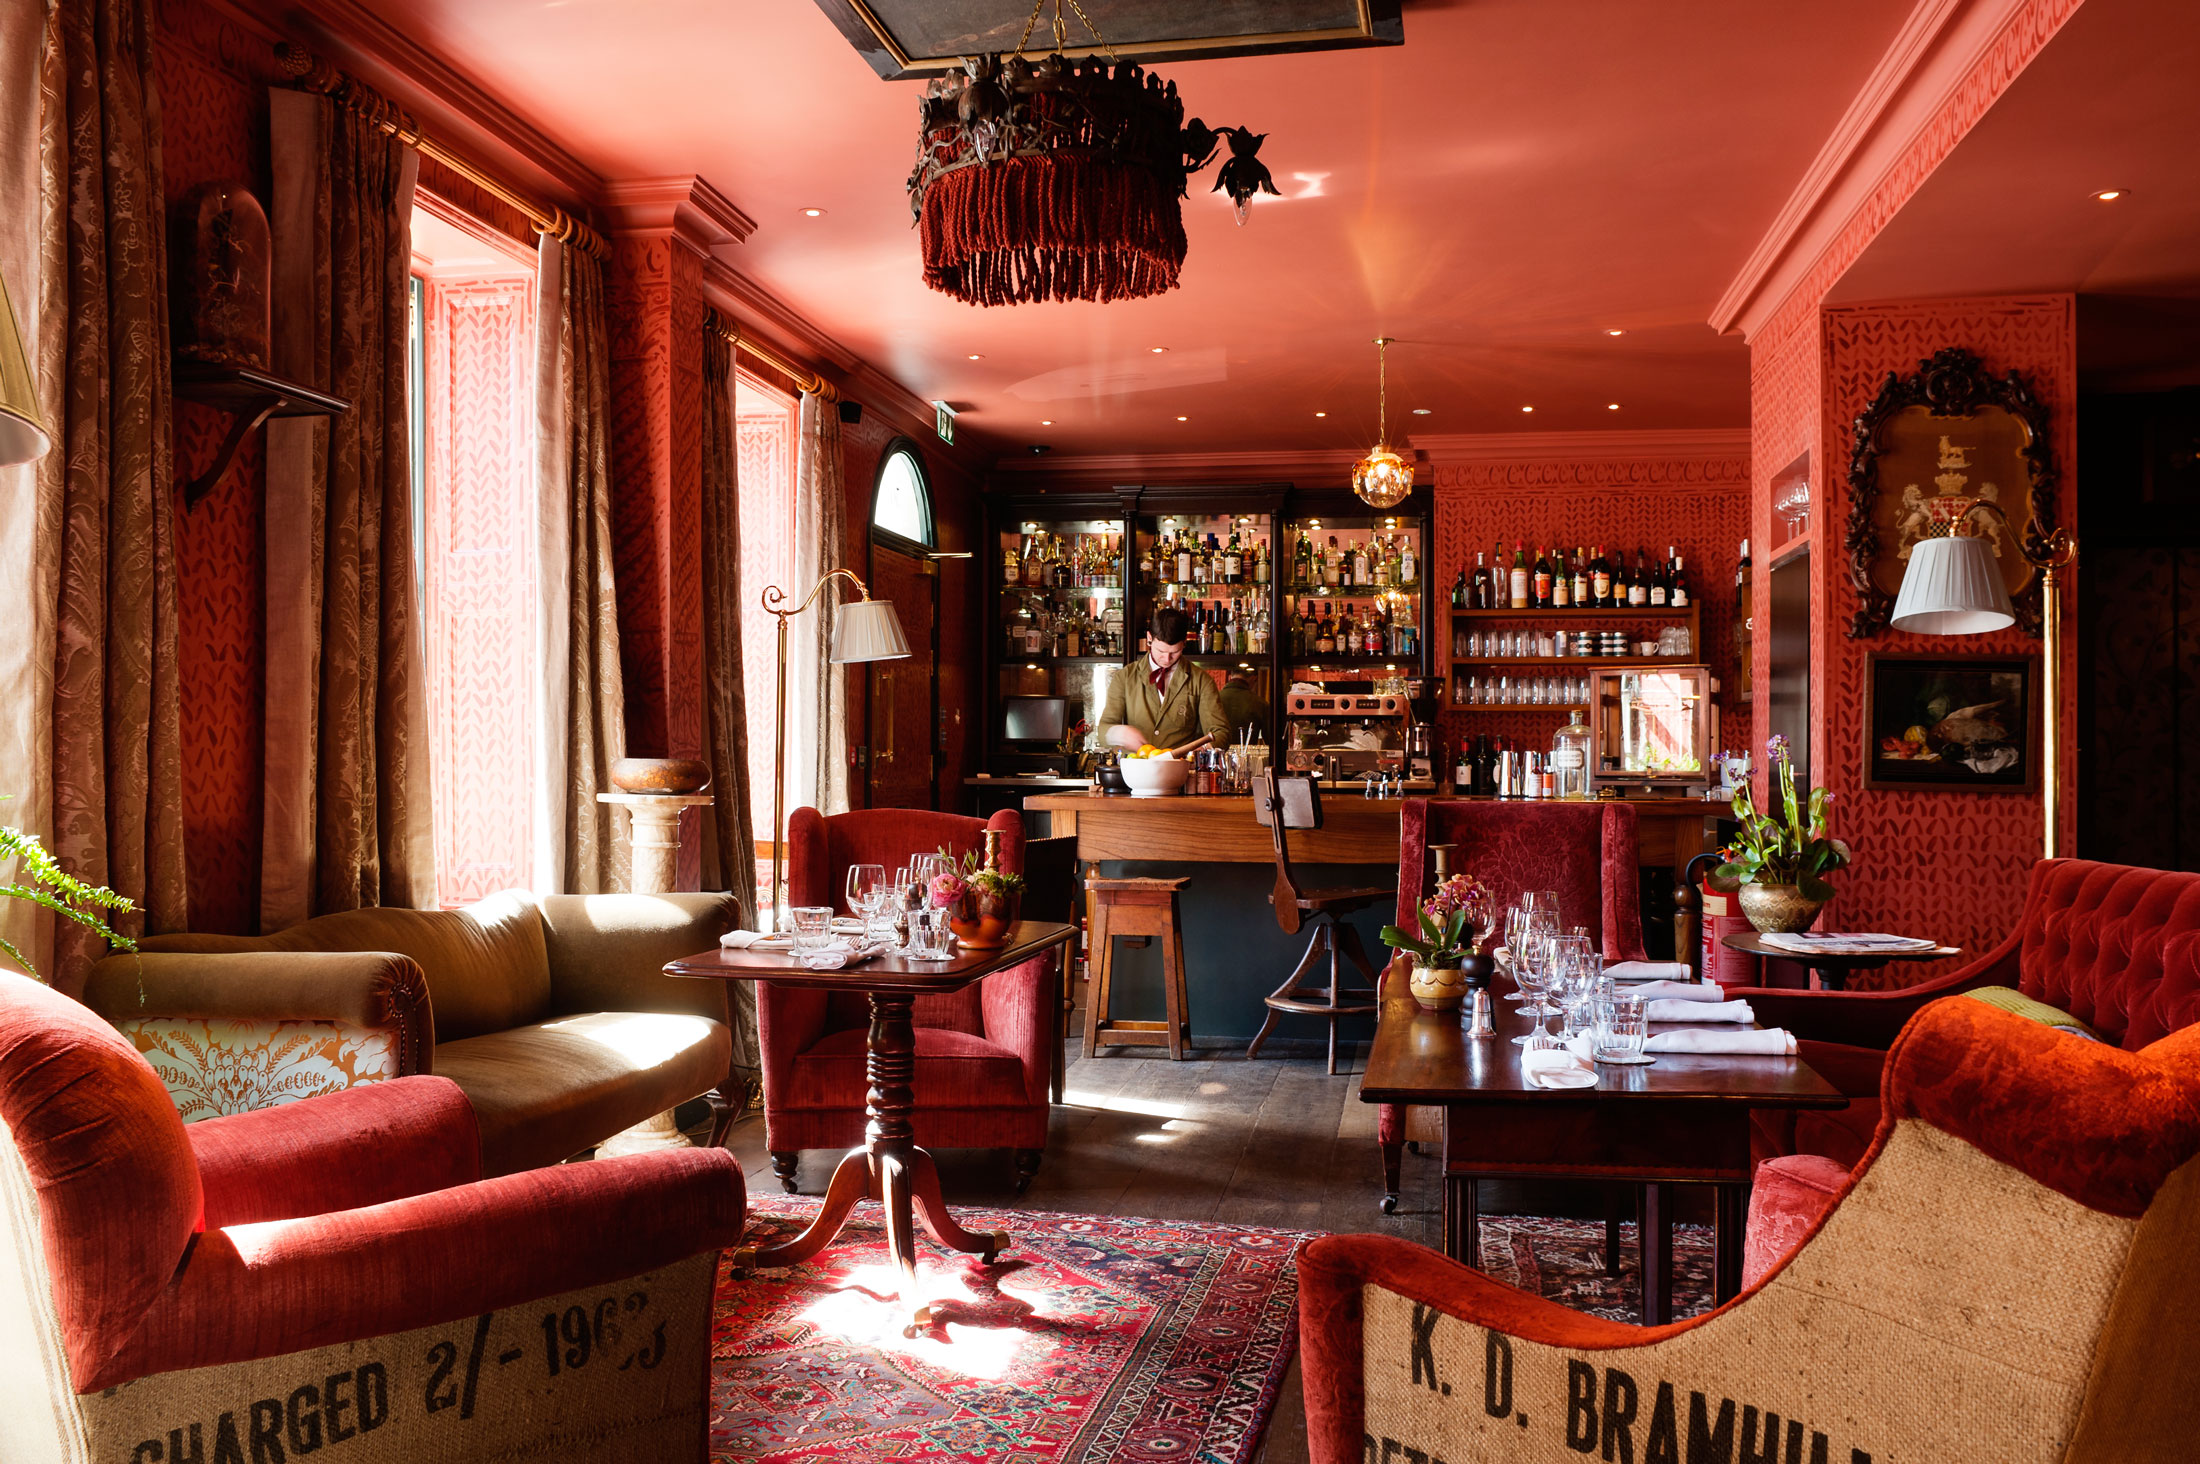 Living Room Bar London Londons Top 10 Hotel Bars The Quirky Cool And Glamorous Bloomberg